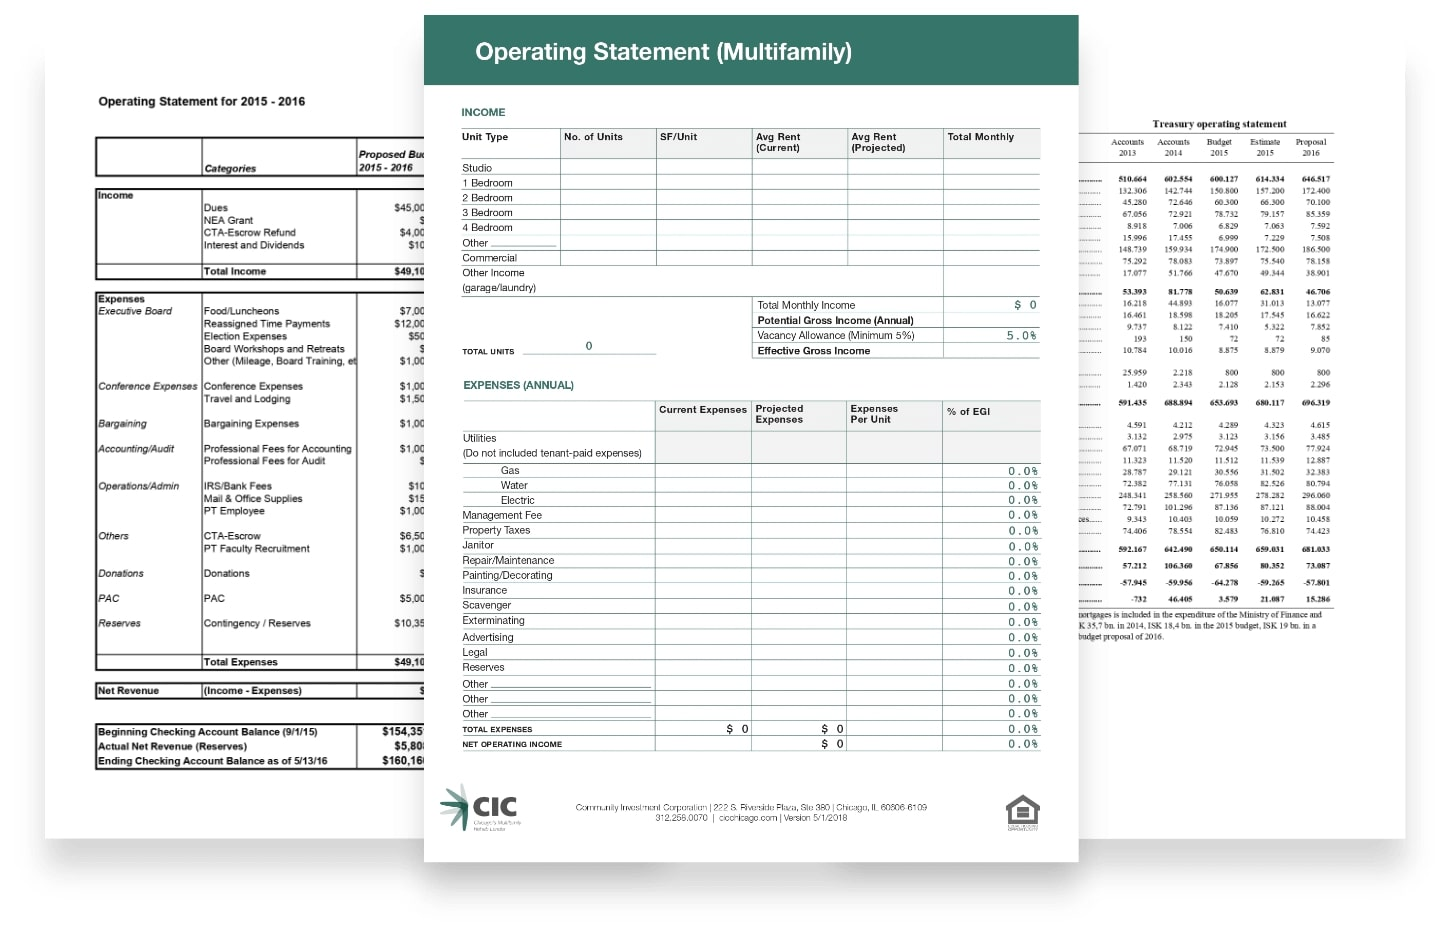 Operating Statement Processing